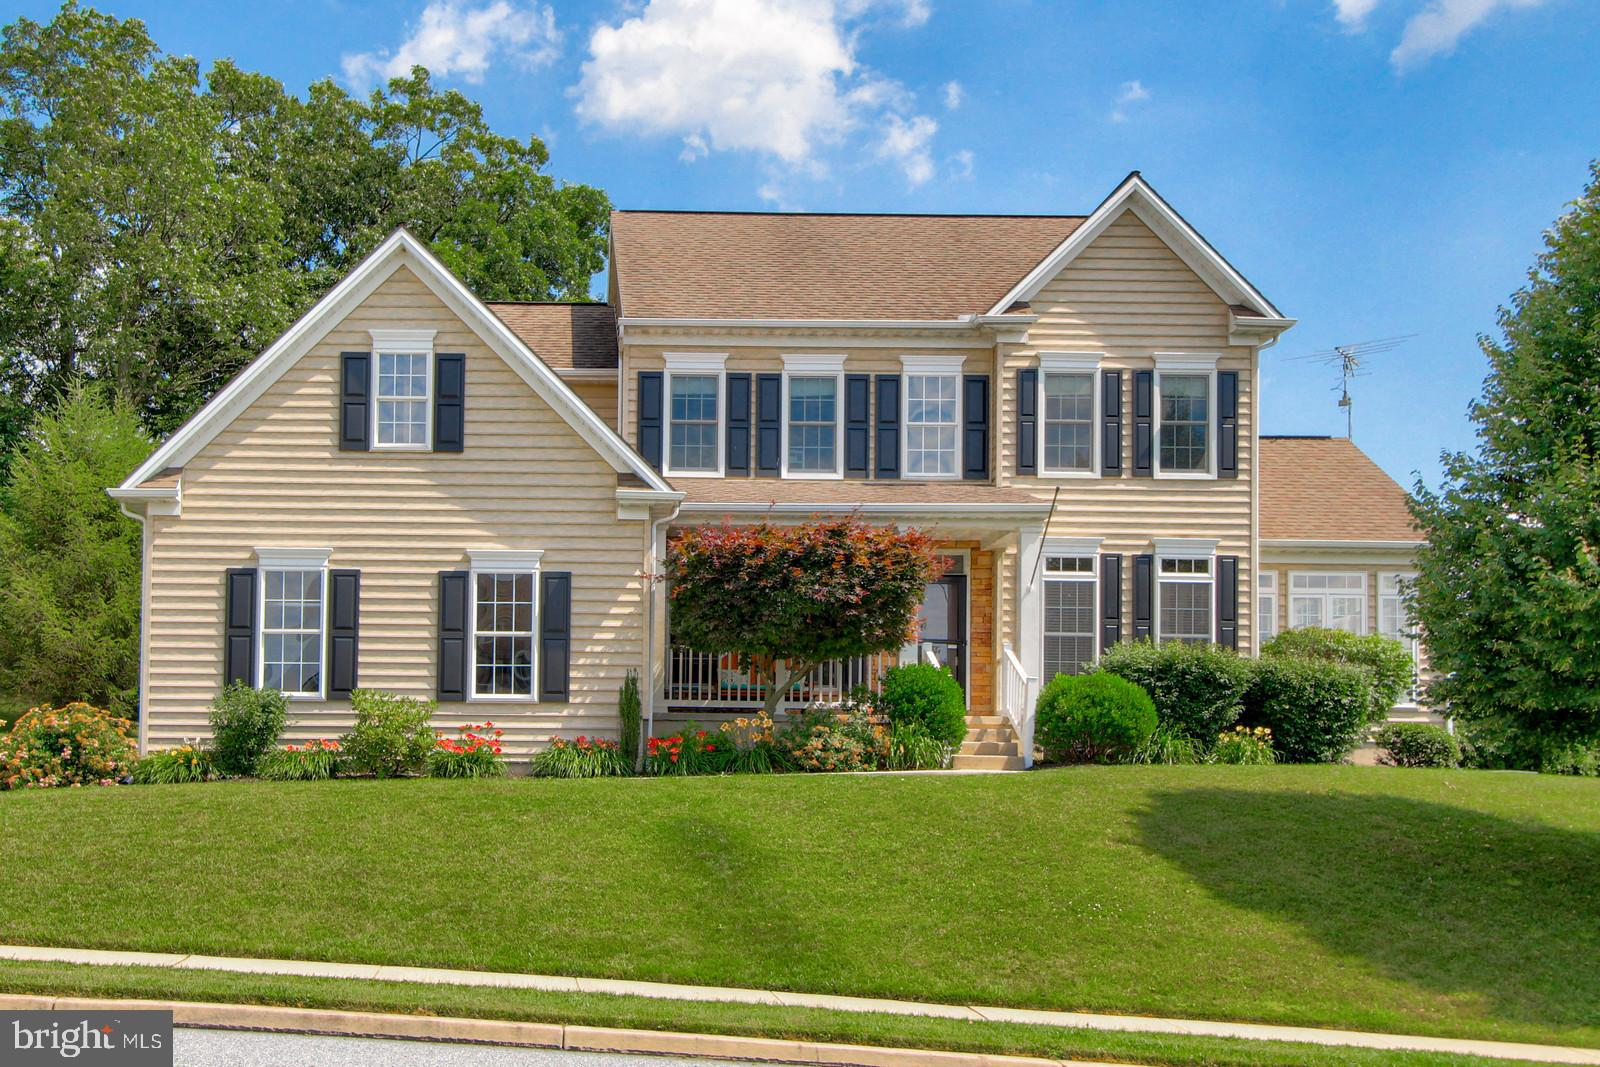 713 CONNOLLY DRIVE, RED LION, PA 17356